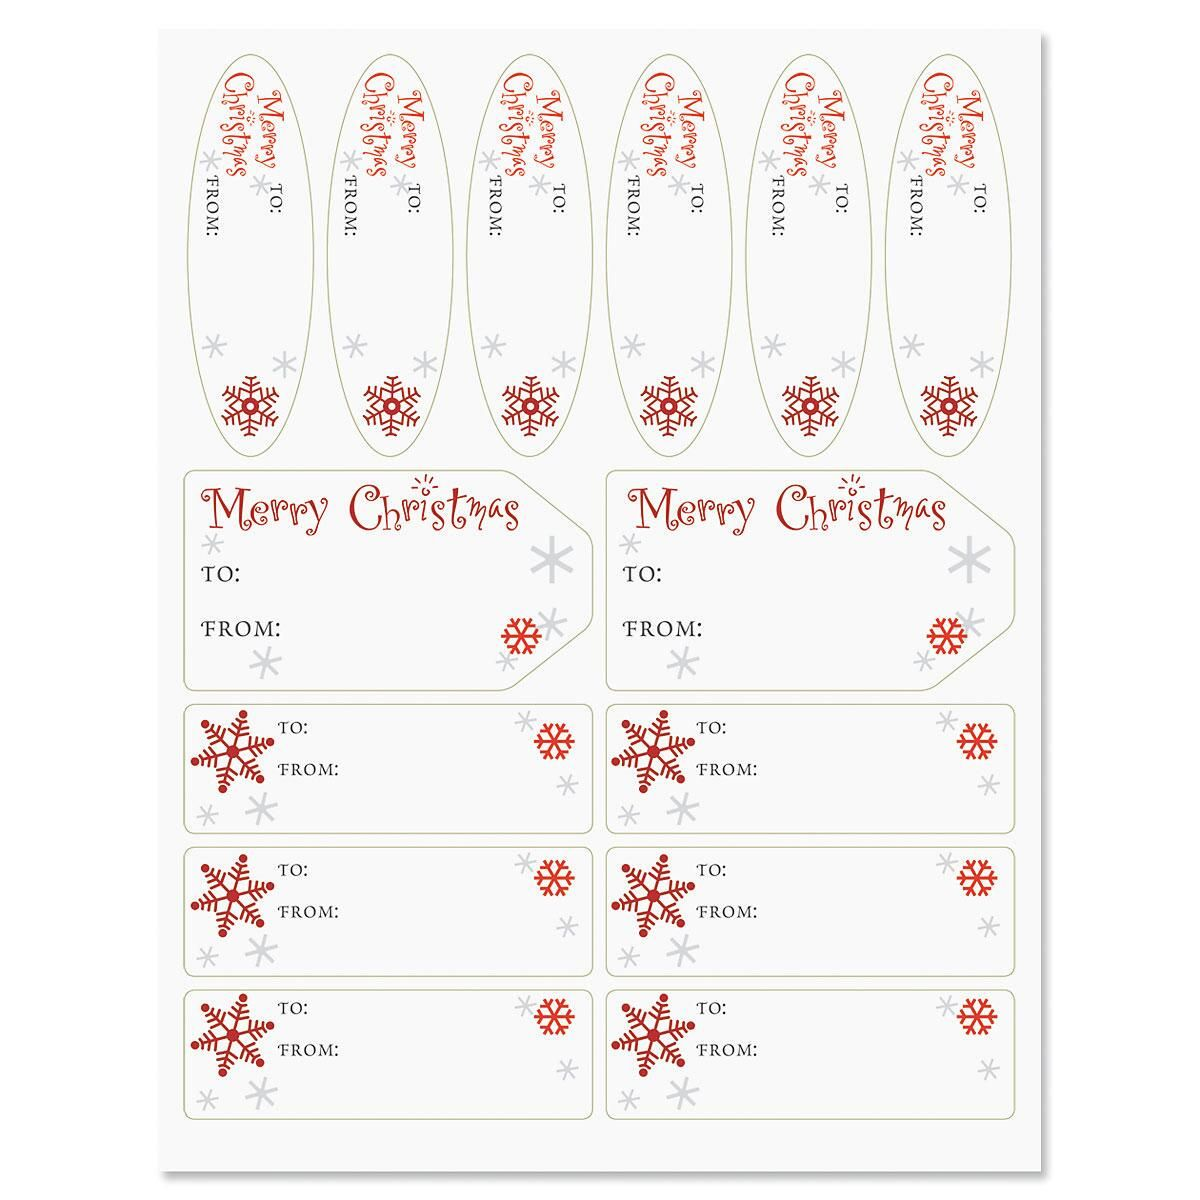 Merry Christmas Script Gift Wrap To/From Labels